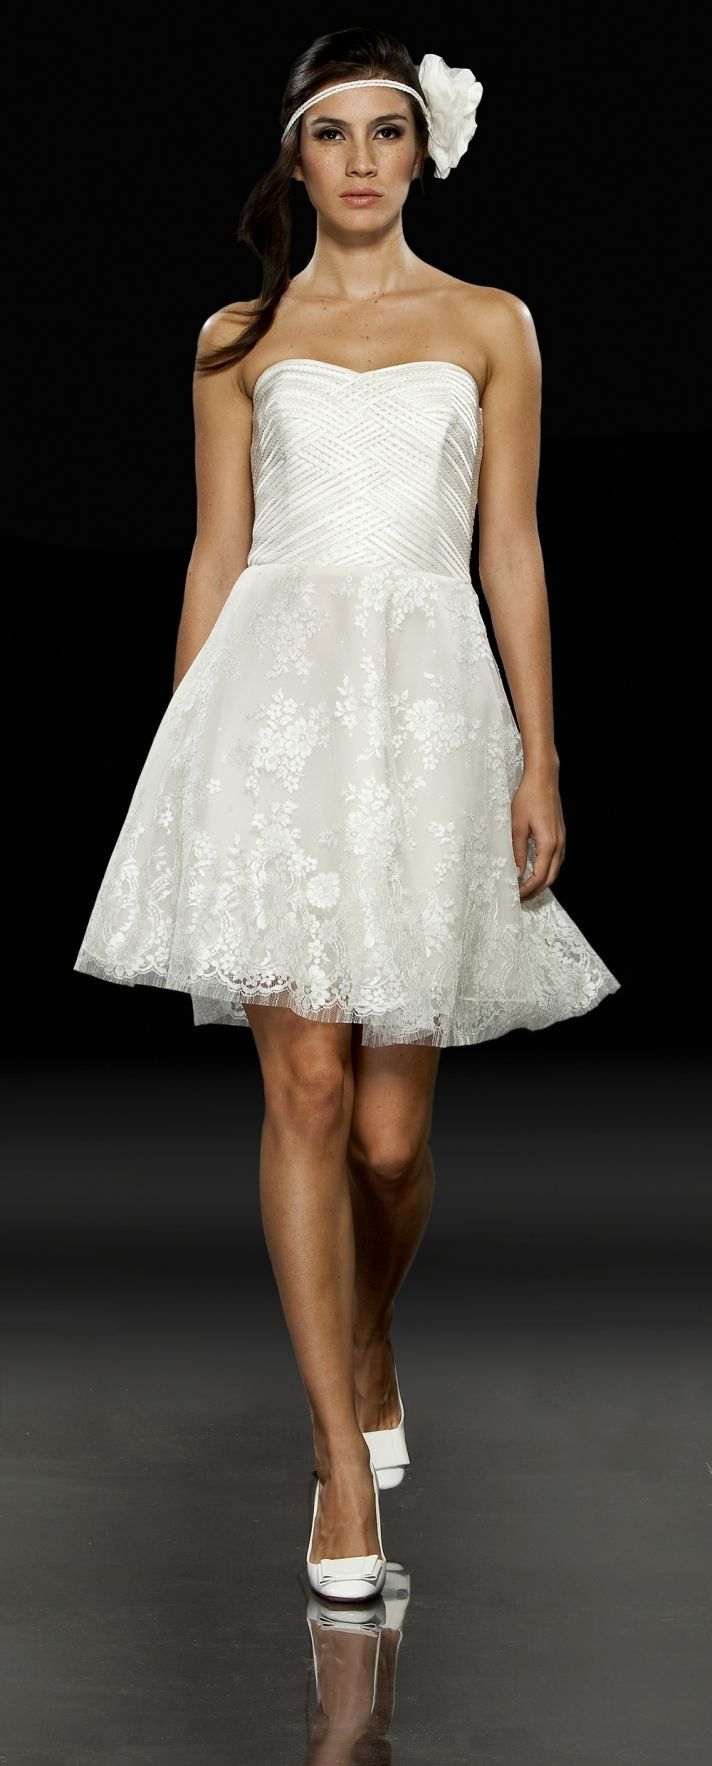 White mini wedding reception dress with lace skirt and strapless neckline